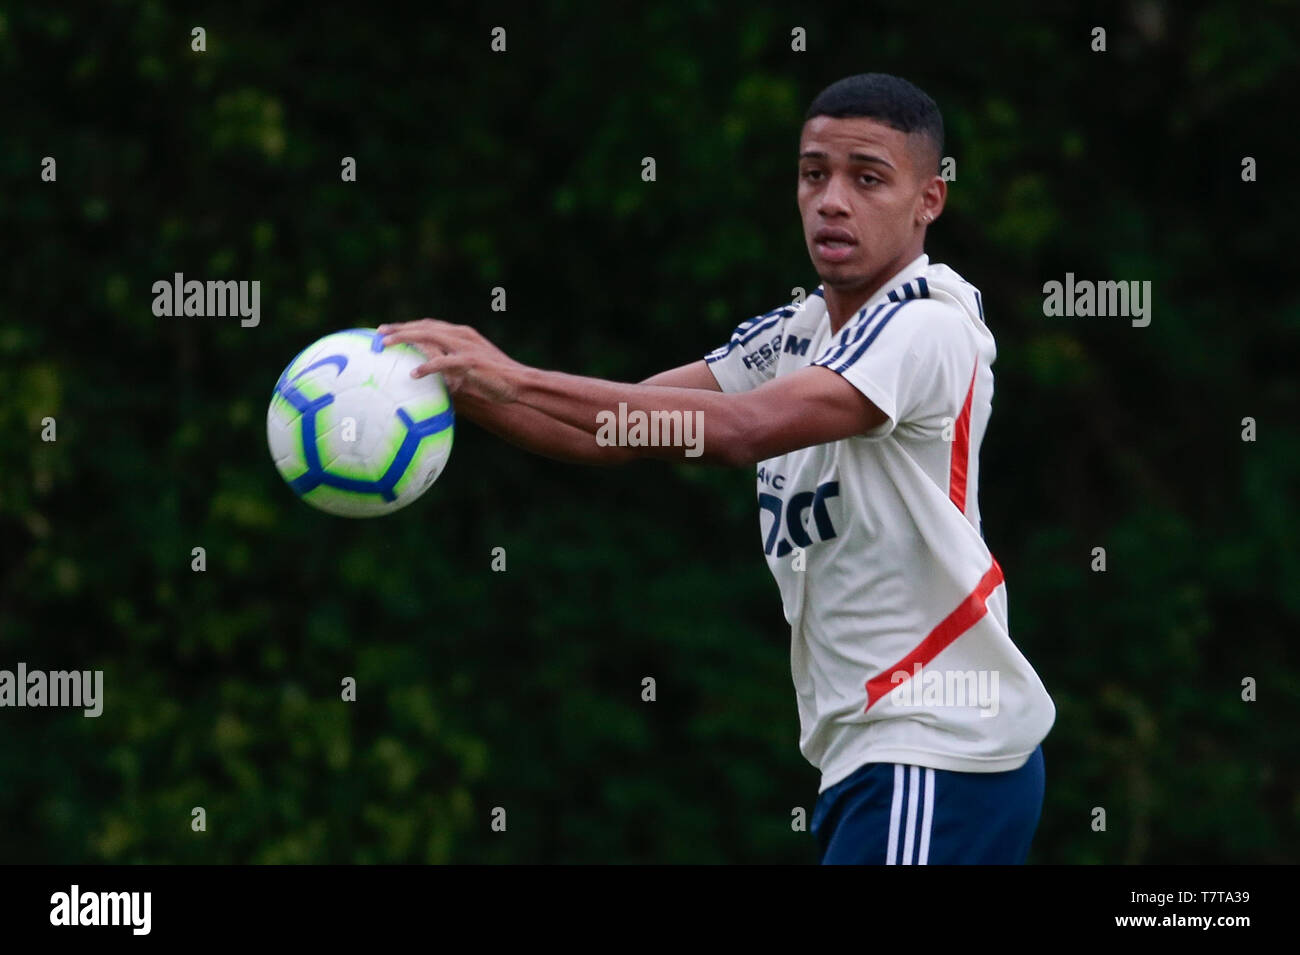 Sao Paulo, Brazil. 08th May, 2019. Training of Sao Paulo - Brenner during training of Sao Paulo at CT Barra Funda. Credit: AGIF/Alamy Live News - Stock Image